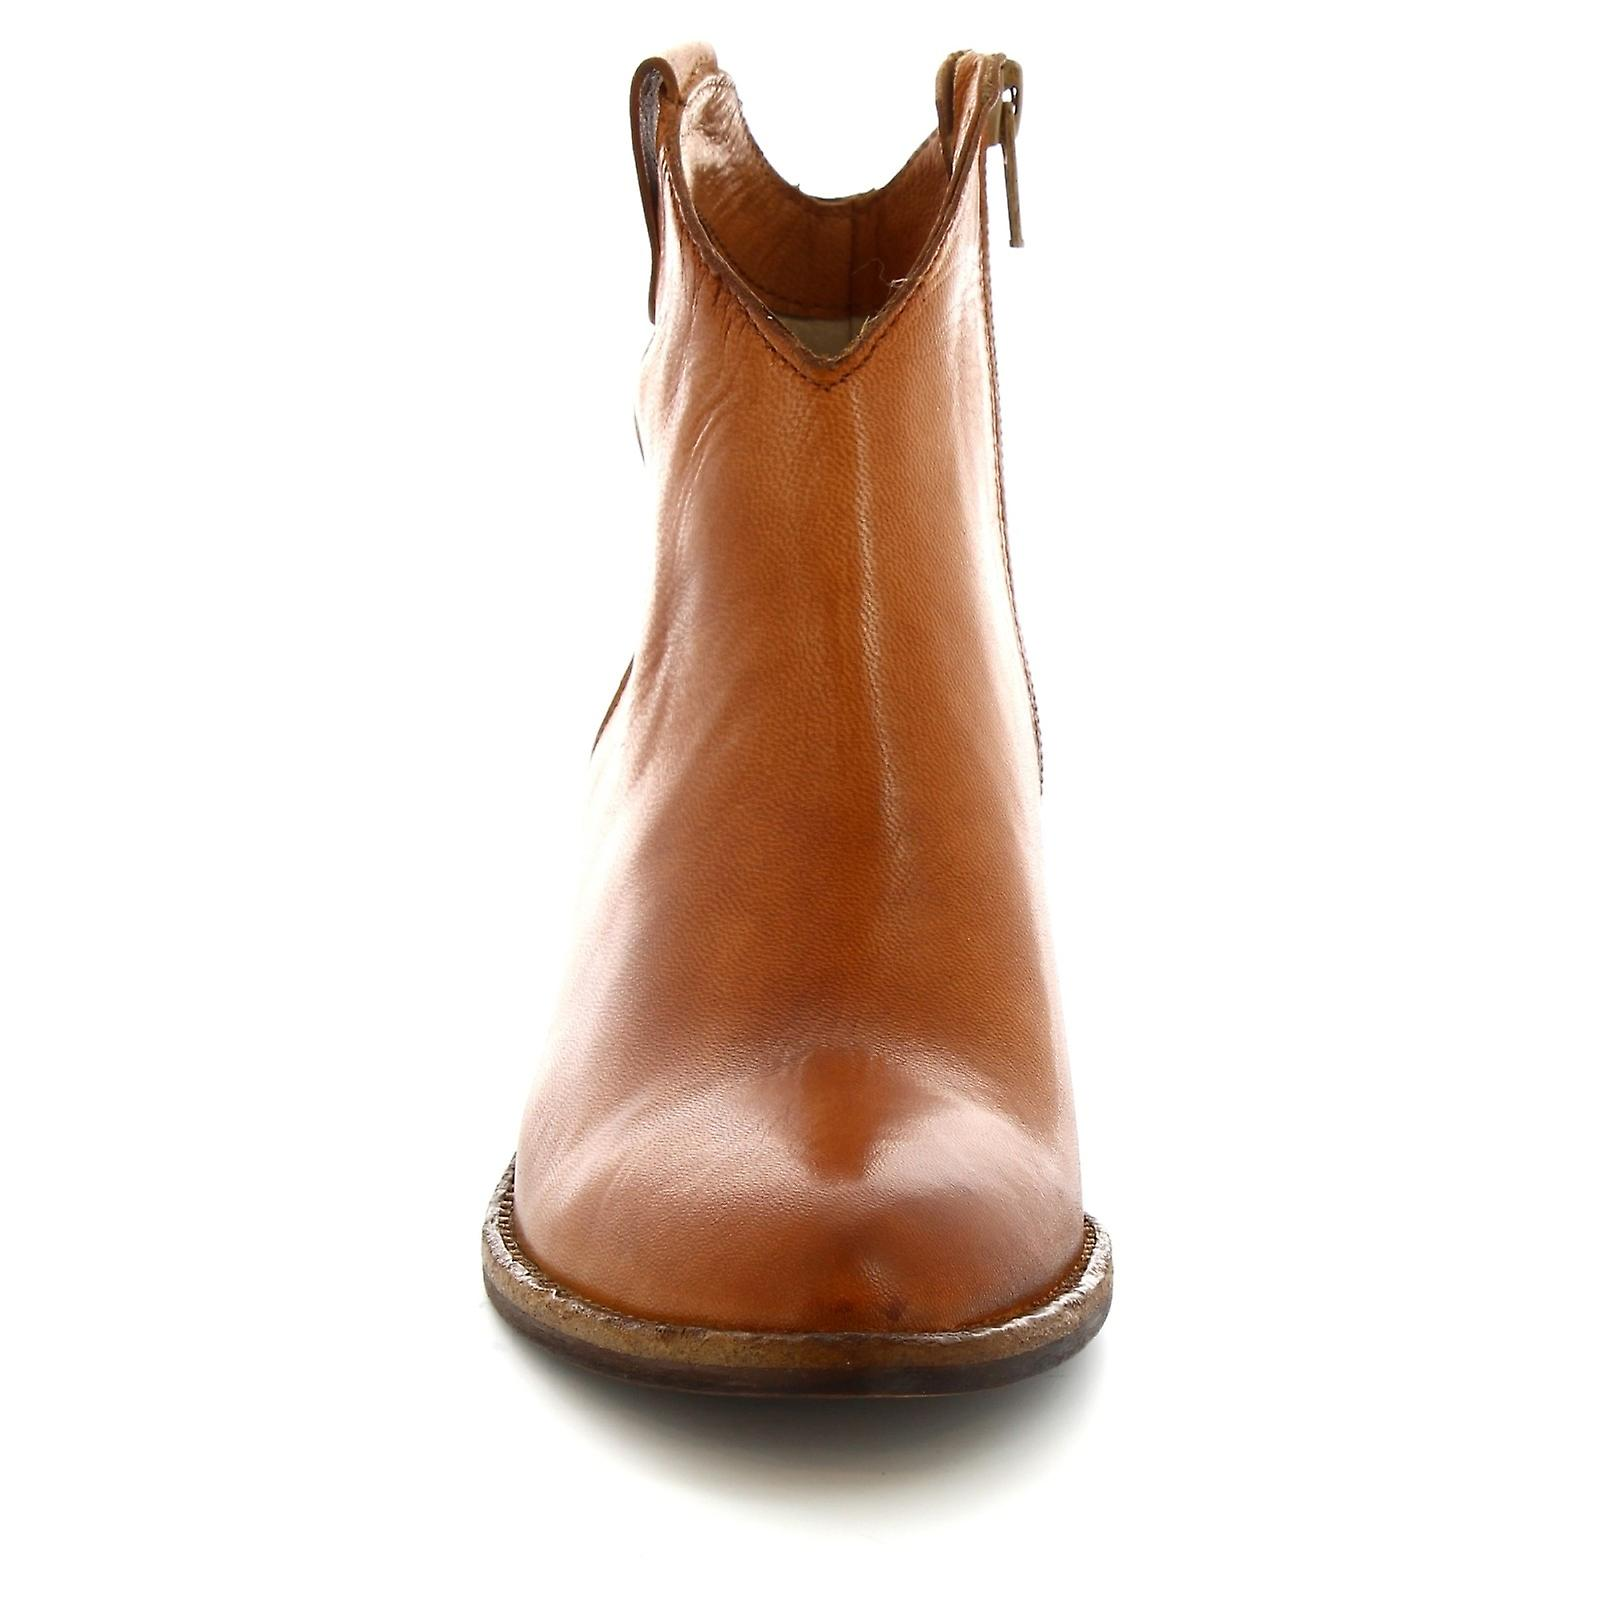 Leonardo Shoes Women's handmade pointed toe ankle boots in tan calf leather